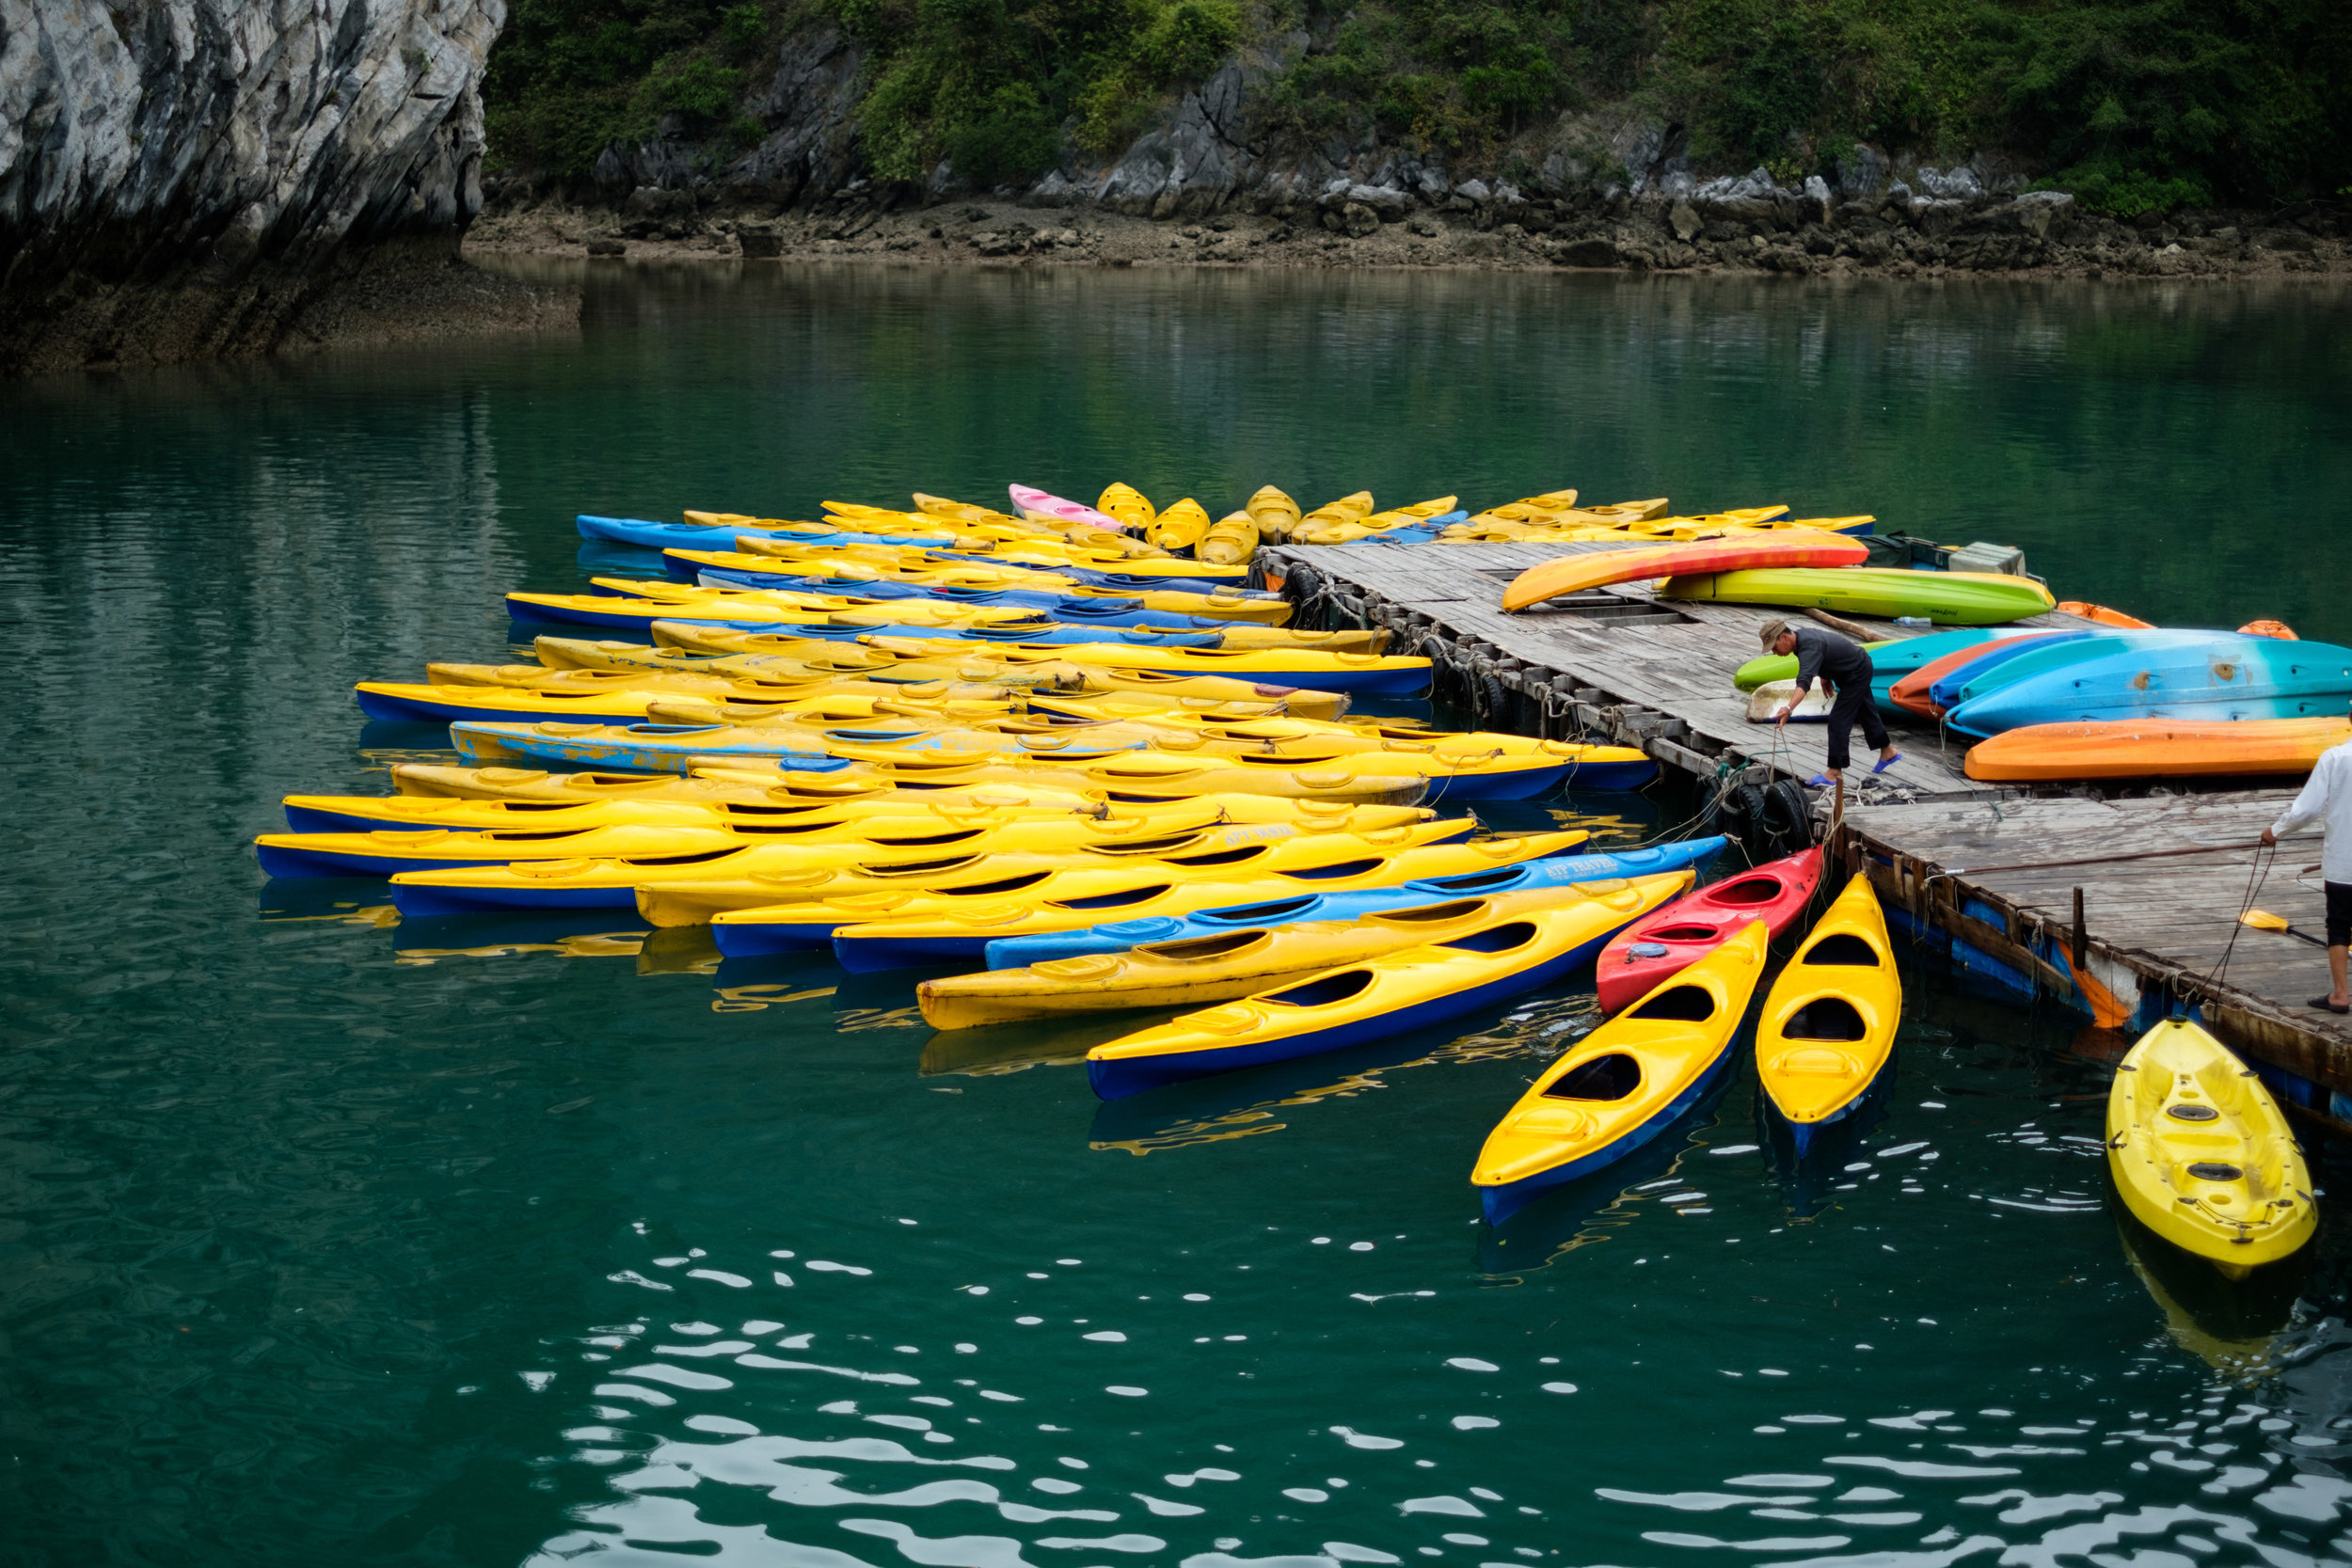 Kayaks are lined up ready for a tour group on Lan Ha Bay in Vietnam